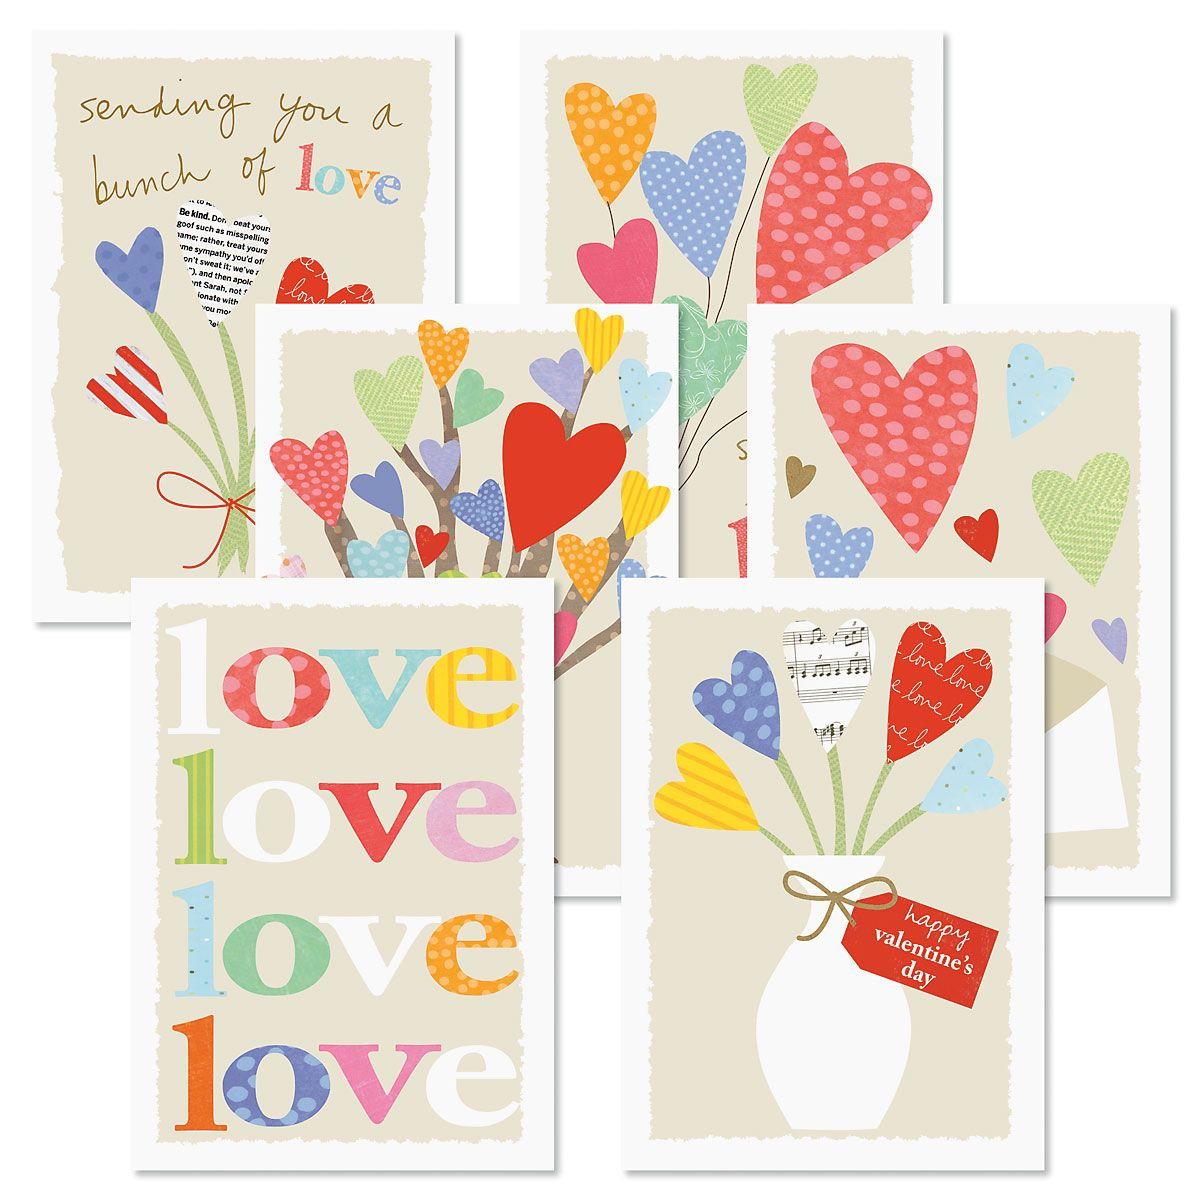 Share Love Valentines Day Cards and Seals